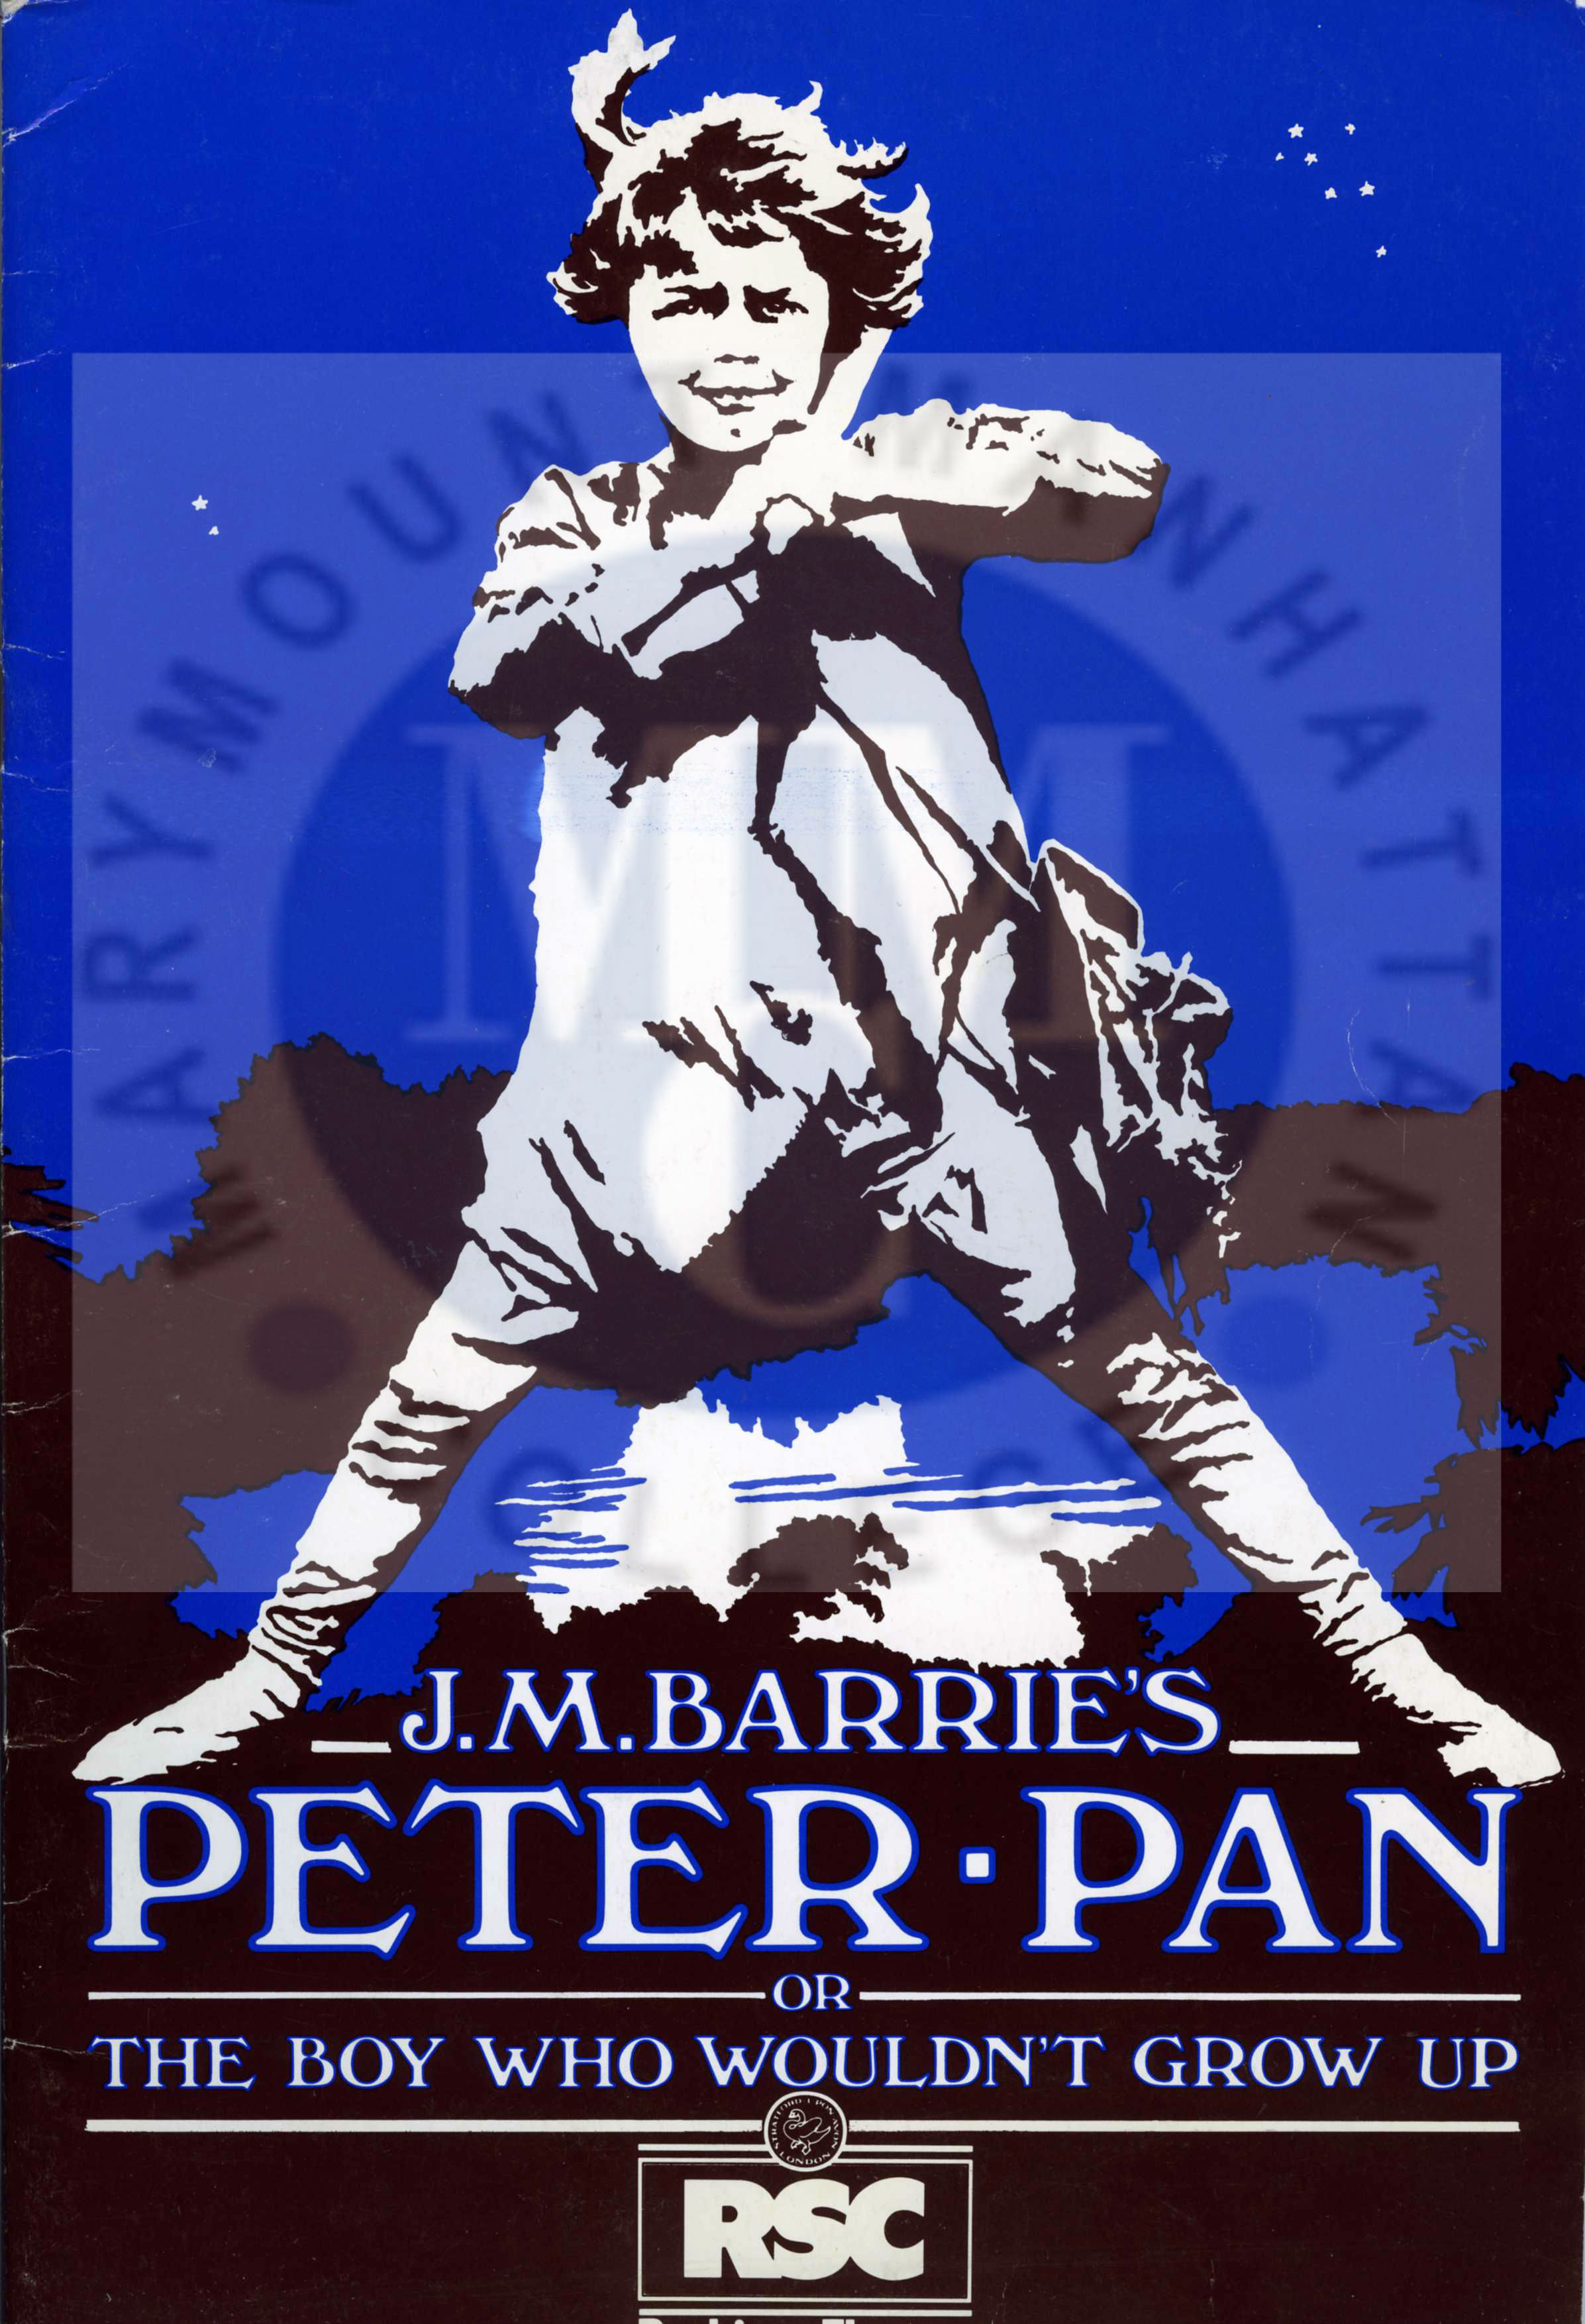 an interpretation of peter pan from While peter pan is in the public domain in some countries, it is subject to copyright in others (albeit with some existing disputes), so your proposed new interpretation could be subject to claims of copyright infringement according to wikipedi.